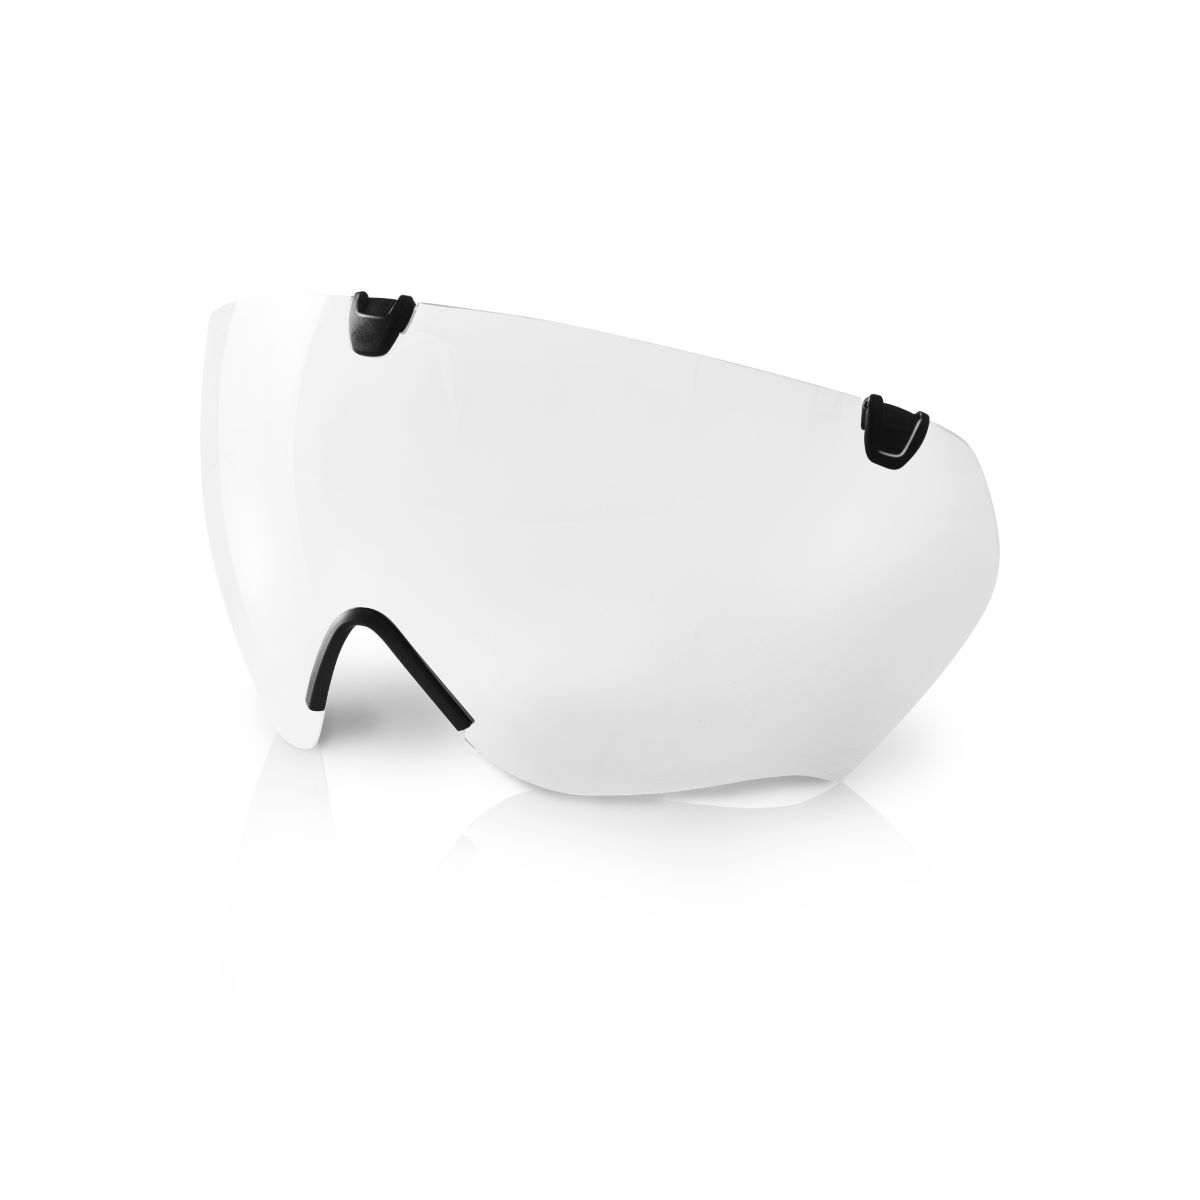 Kask Kask Bambino Pro Clear Visor   Helmet Spares